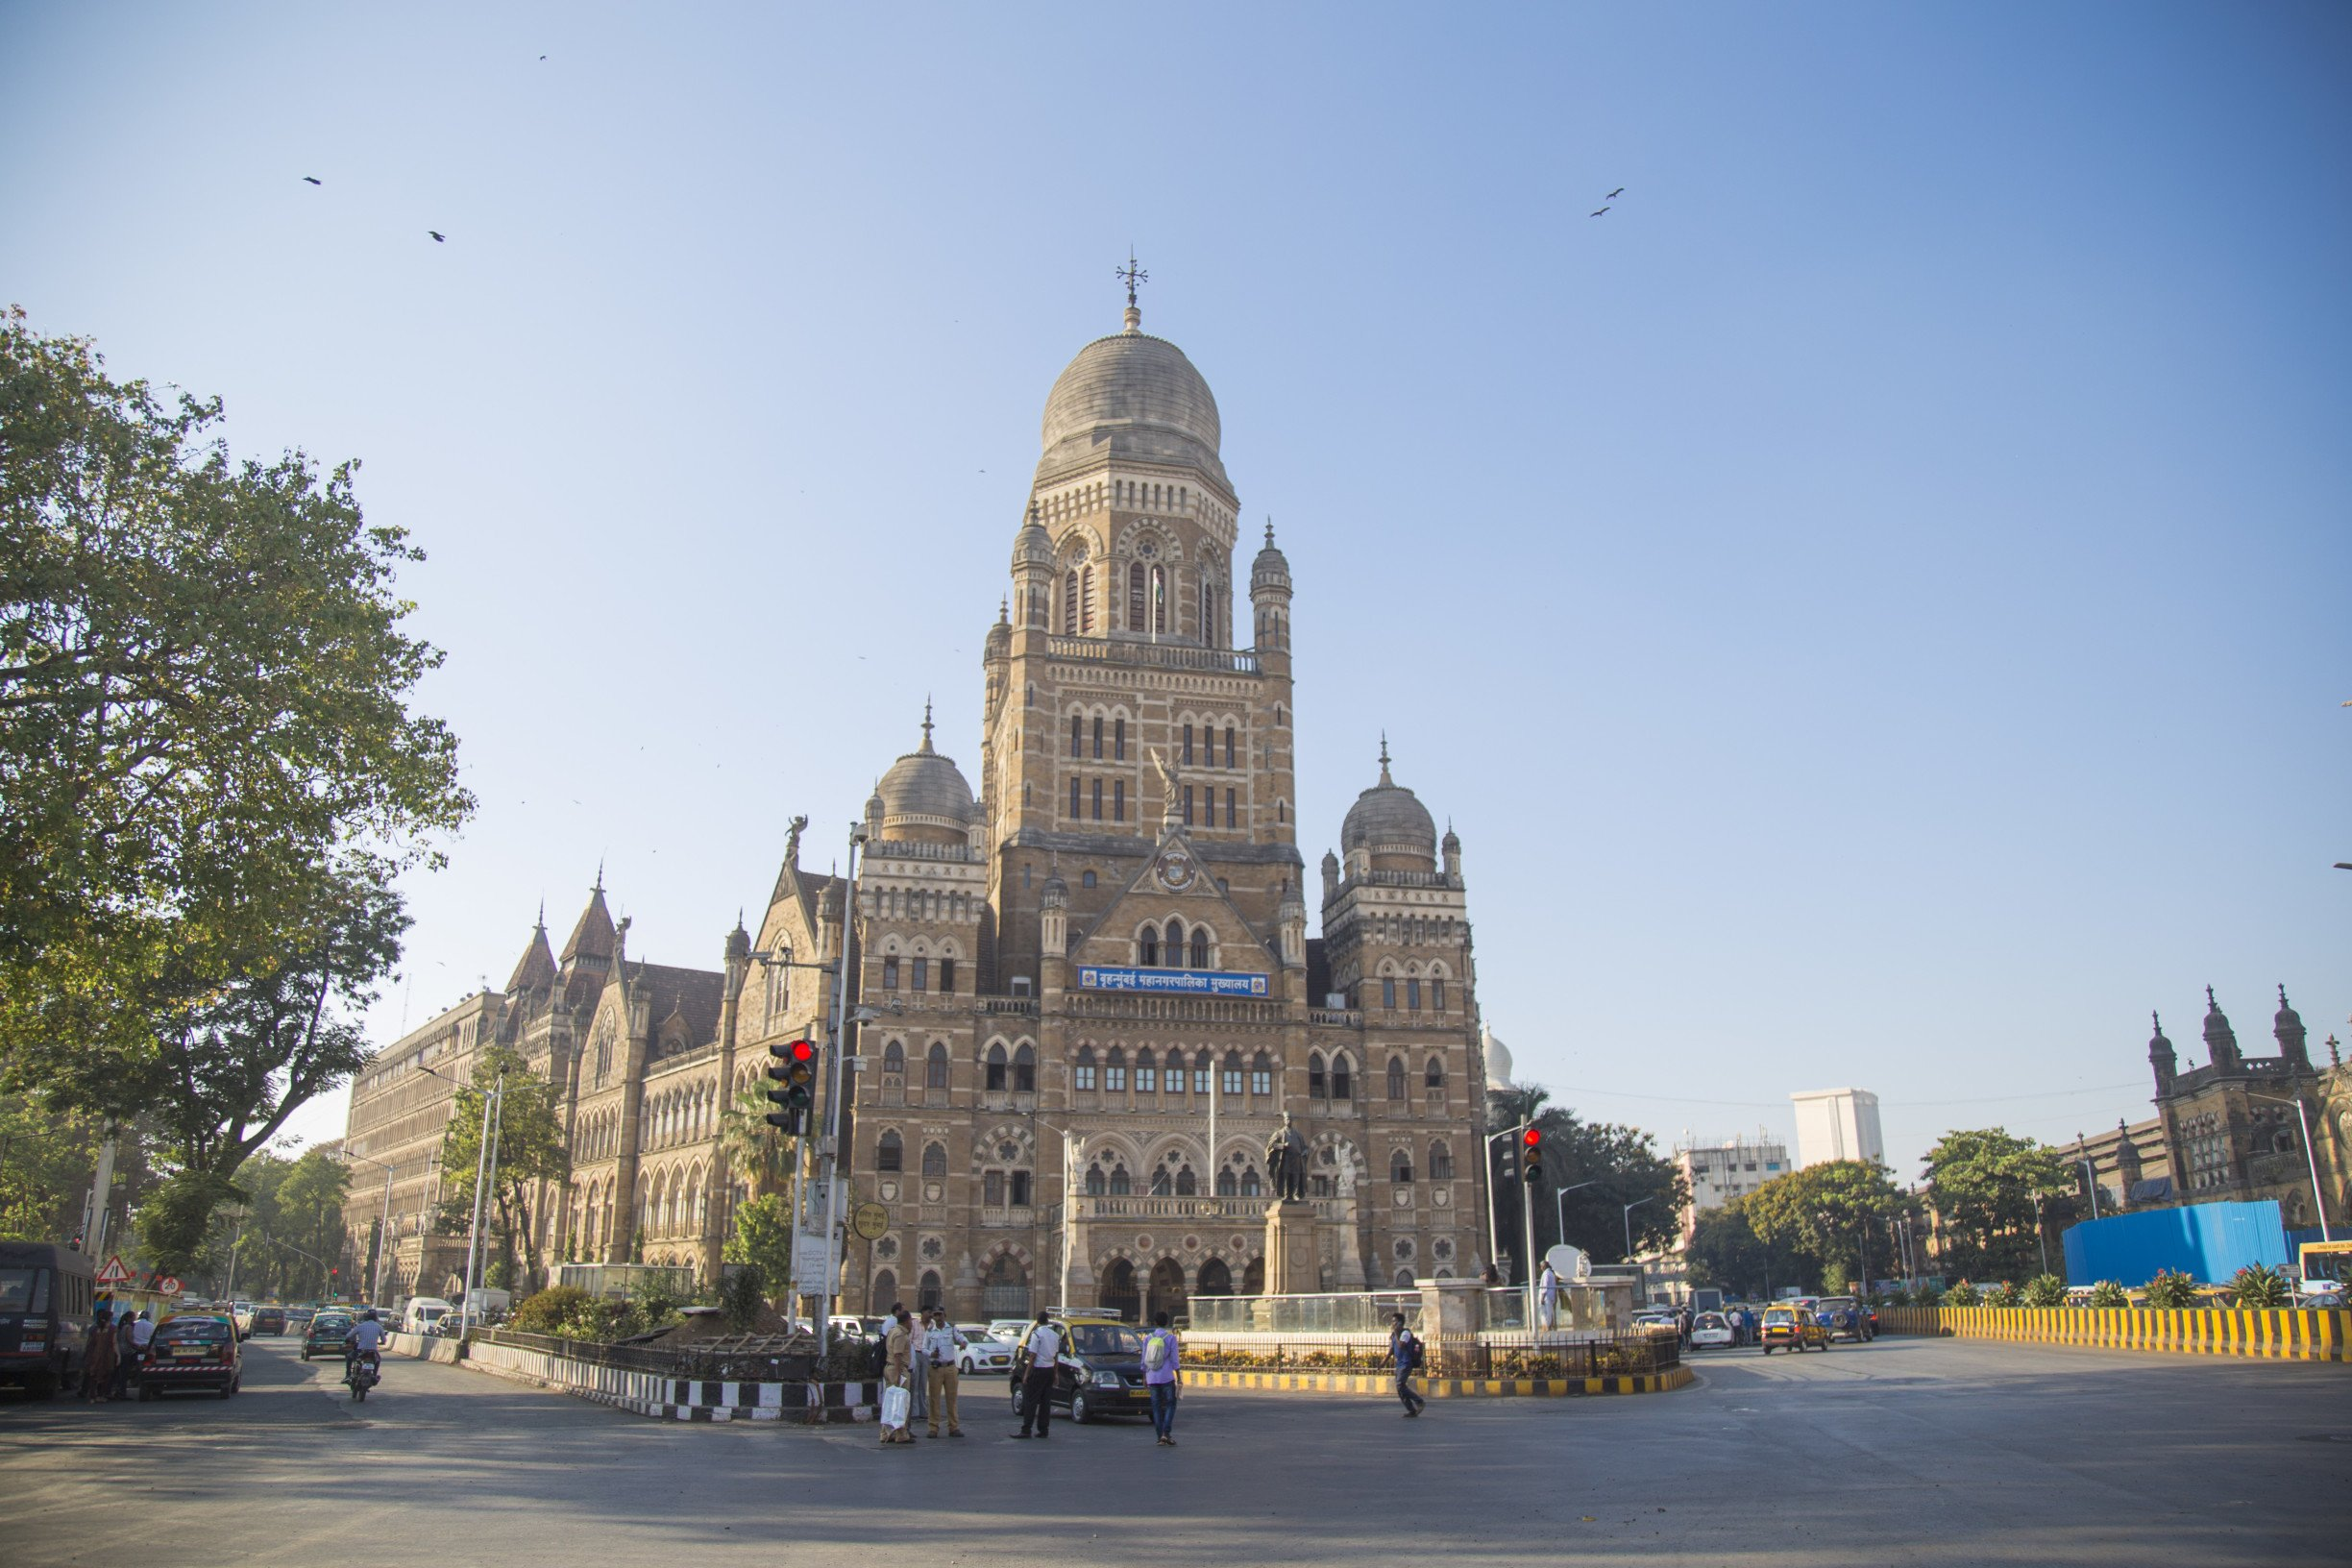 BMC to felicitate societies who conserve gardens and plant trees